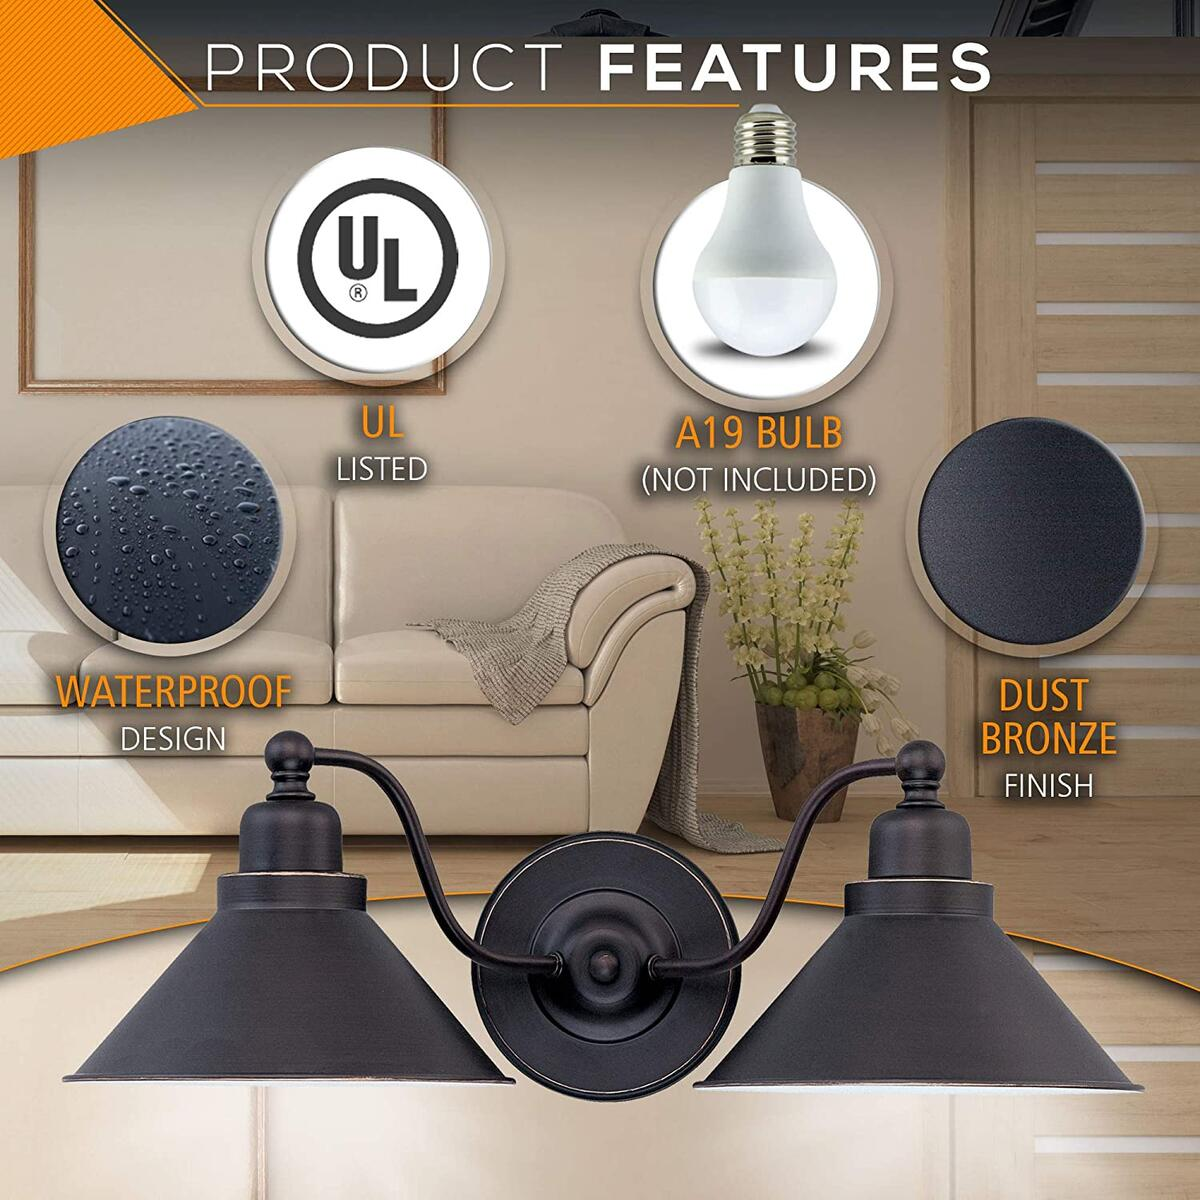 One Light Wall Sconce, Vanity Light, Transitional Style Downlight, with Mission dust Bronze Finish and Metal Shade